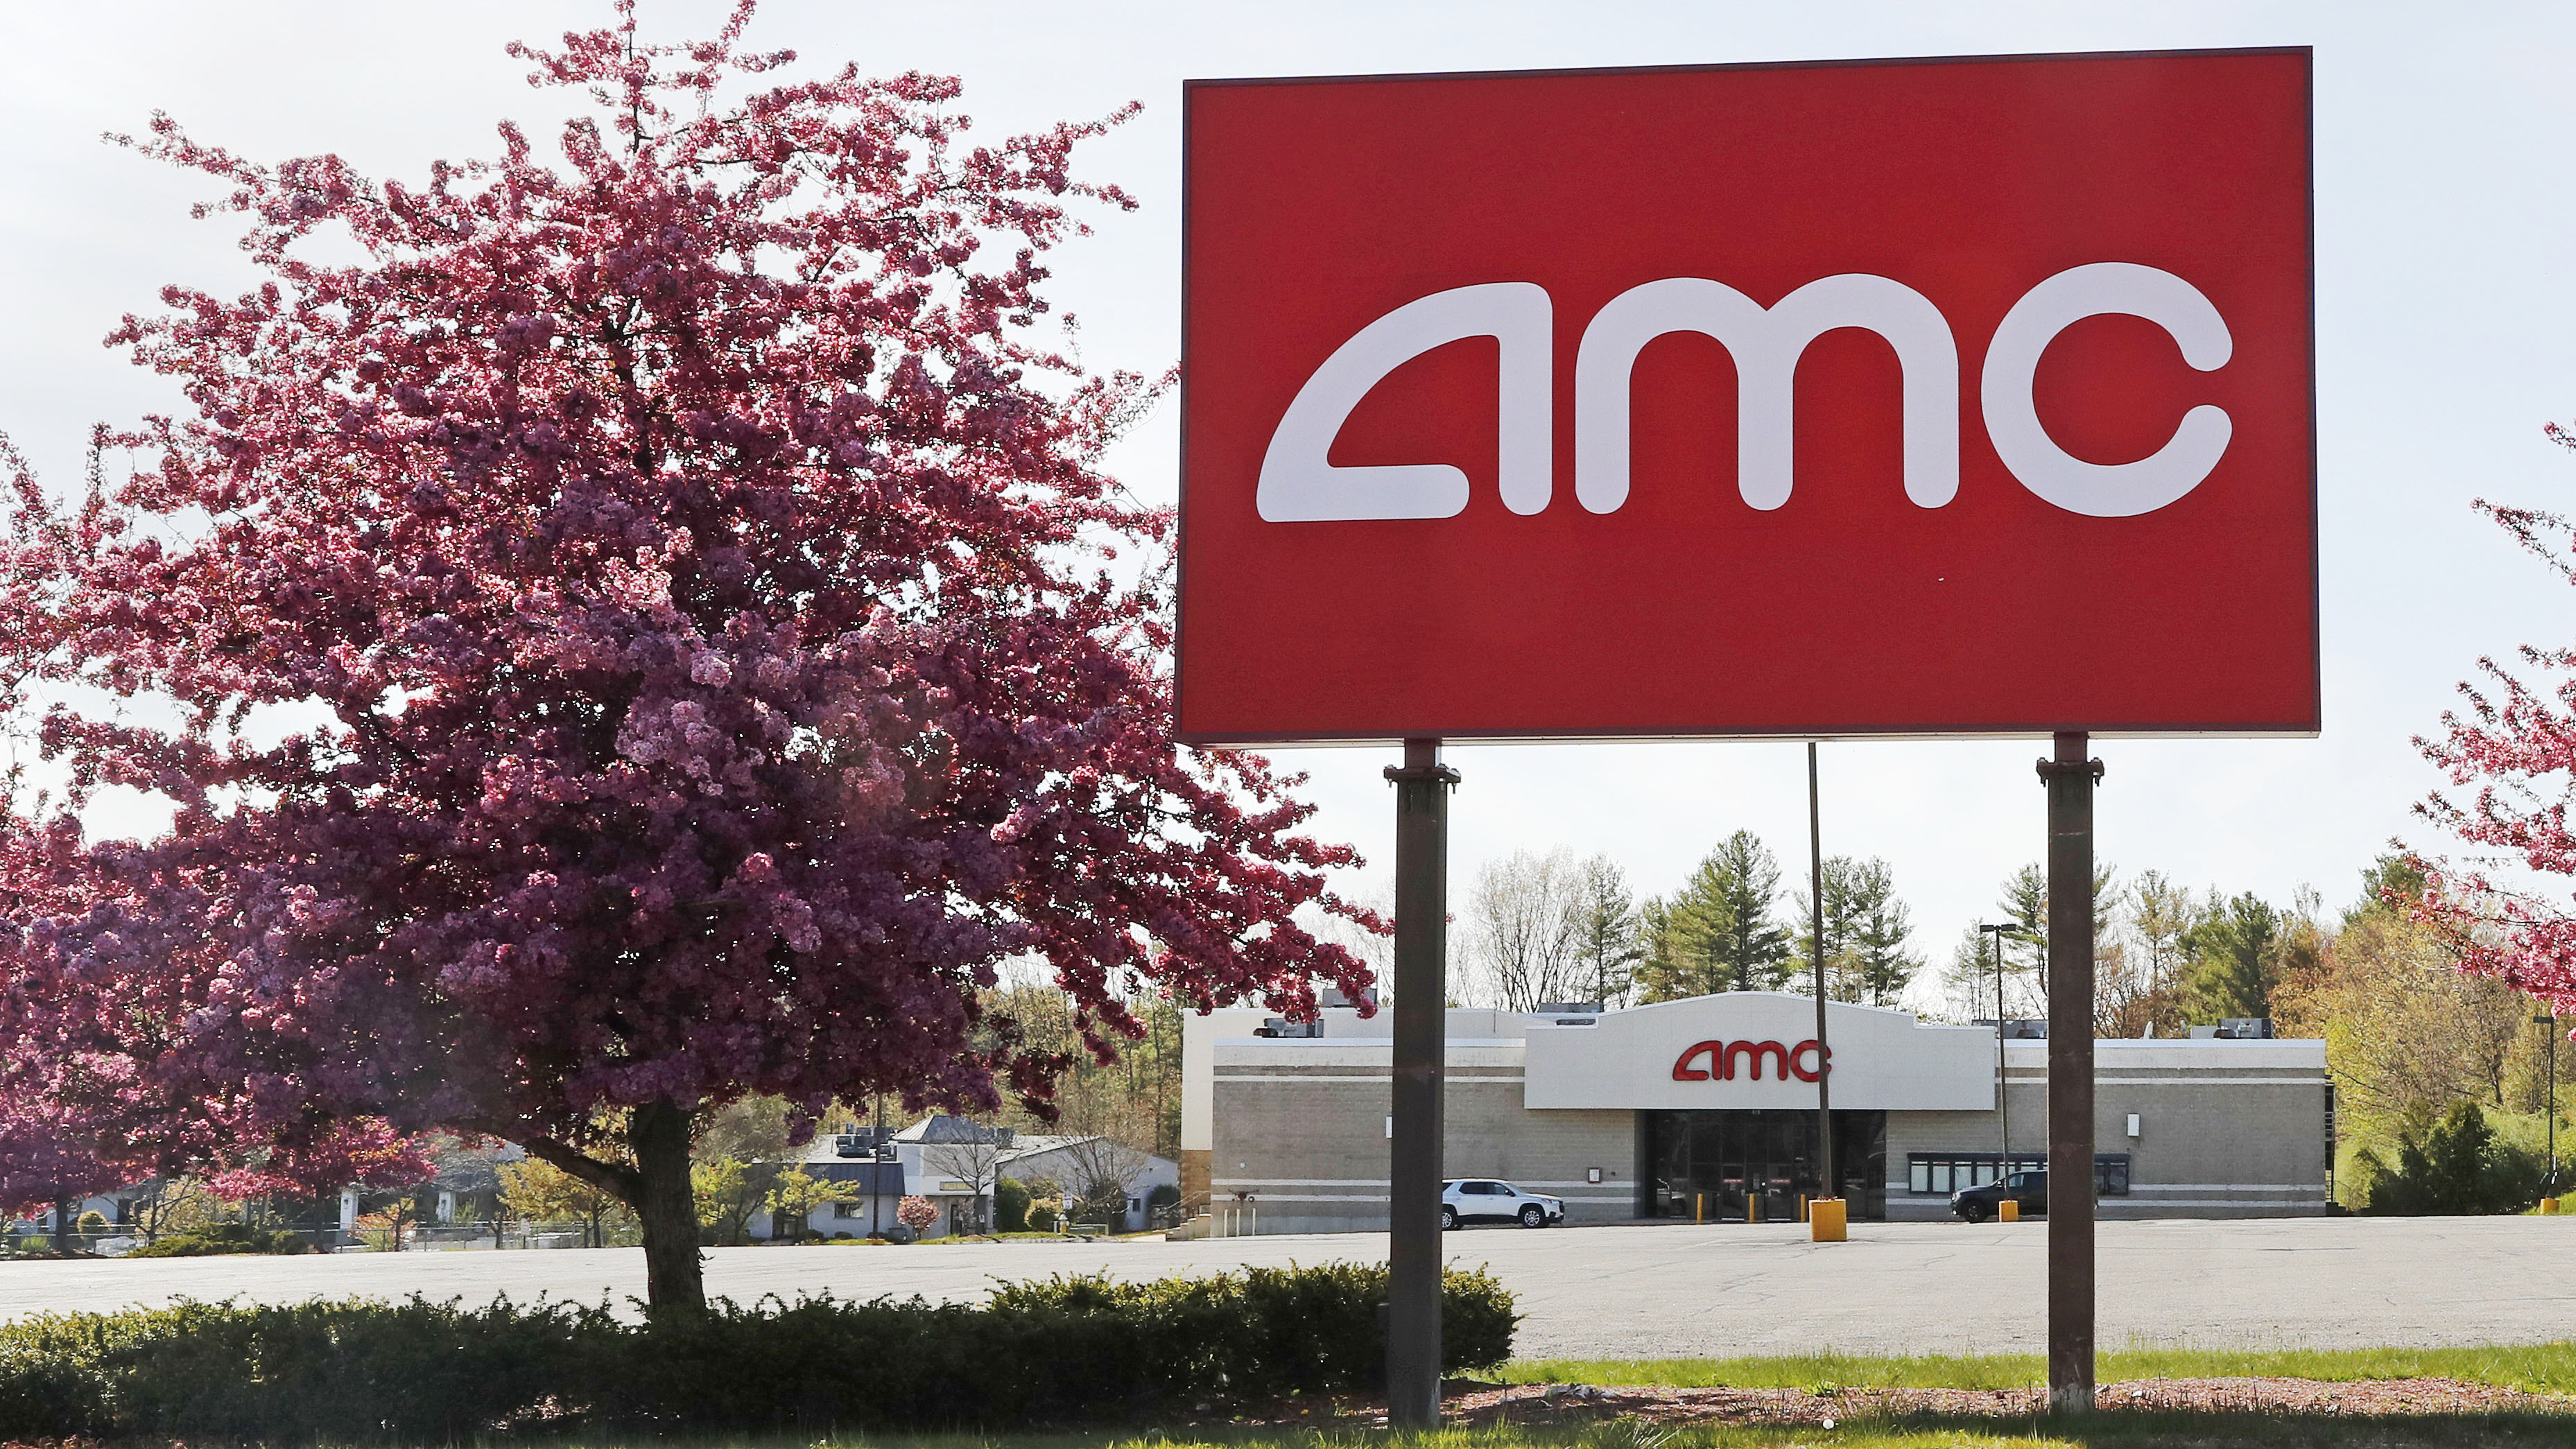 This May 14, 2020, photo shows an AMC theater sign at a nearly empty parking lot for the theater in Londonderry, N.H. After three months of near total blackout of cinemas nationwide, movie theaters are preparing to reopen - even if it means only a few titles on the marquee and showings limited to as little as 25% capacity.